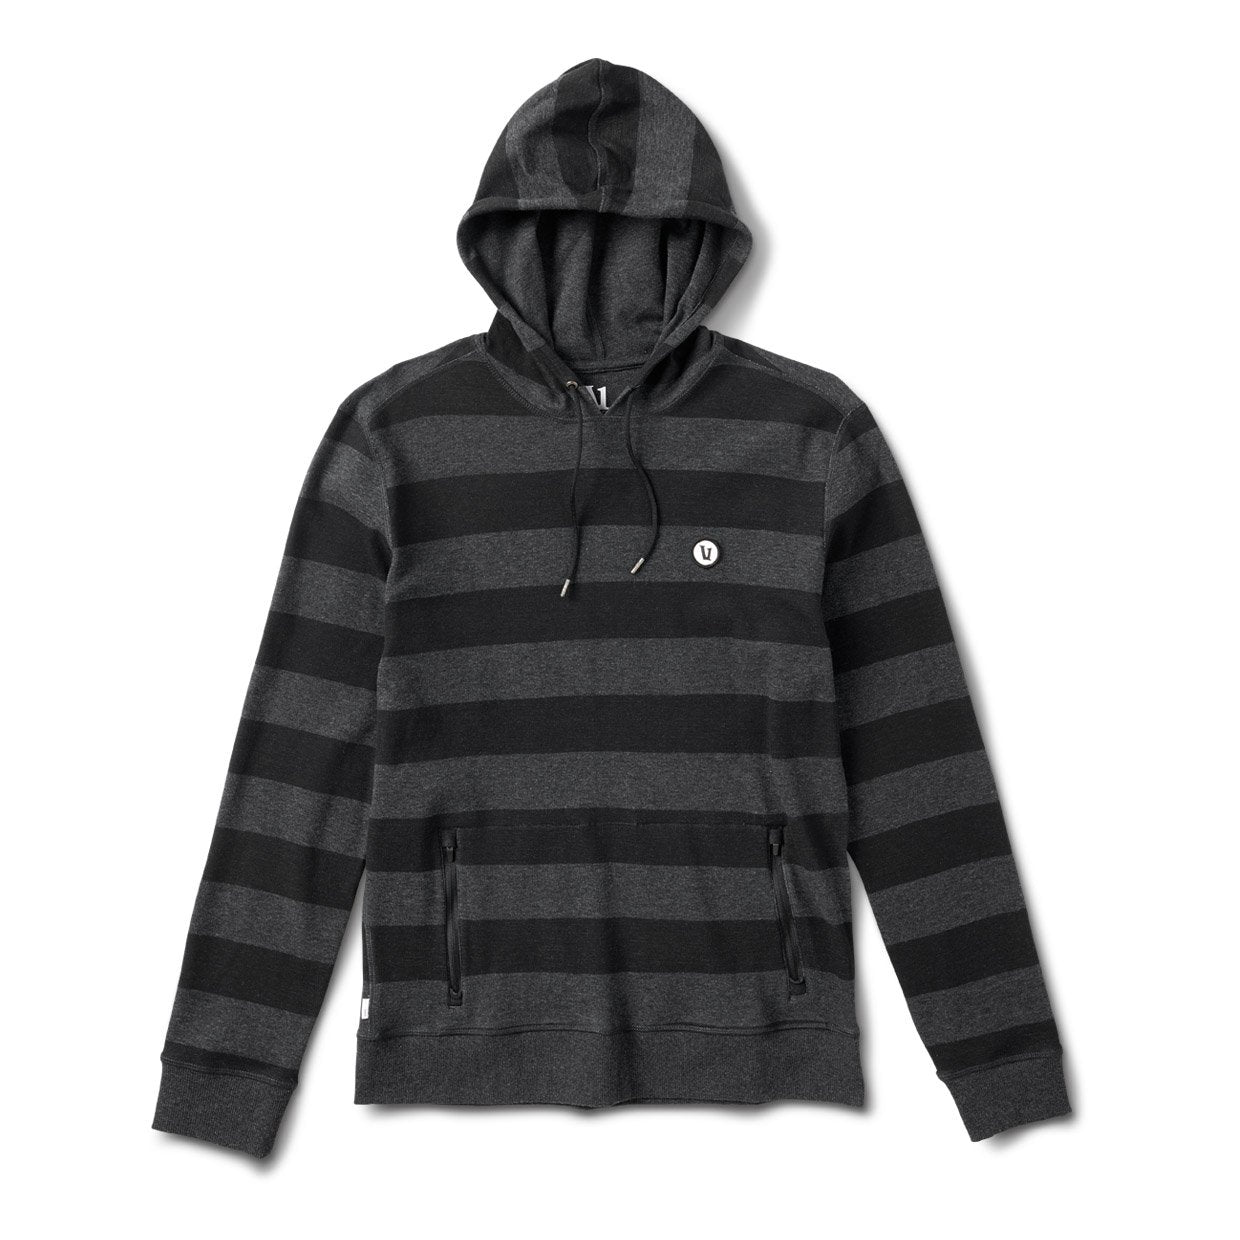 Clark Hoodie - Black Heather Stripe - Black Heather Stripe 1